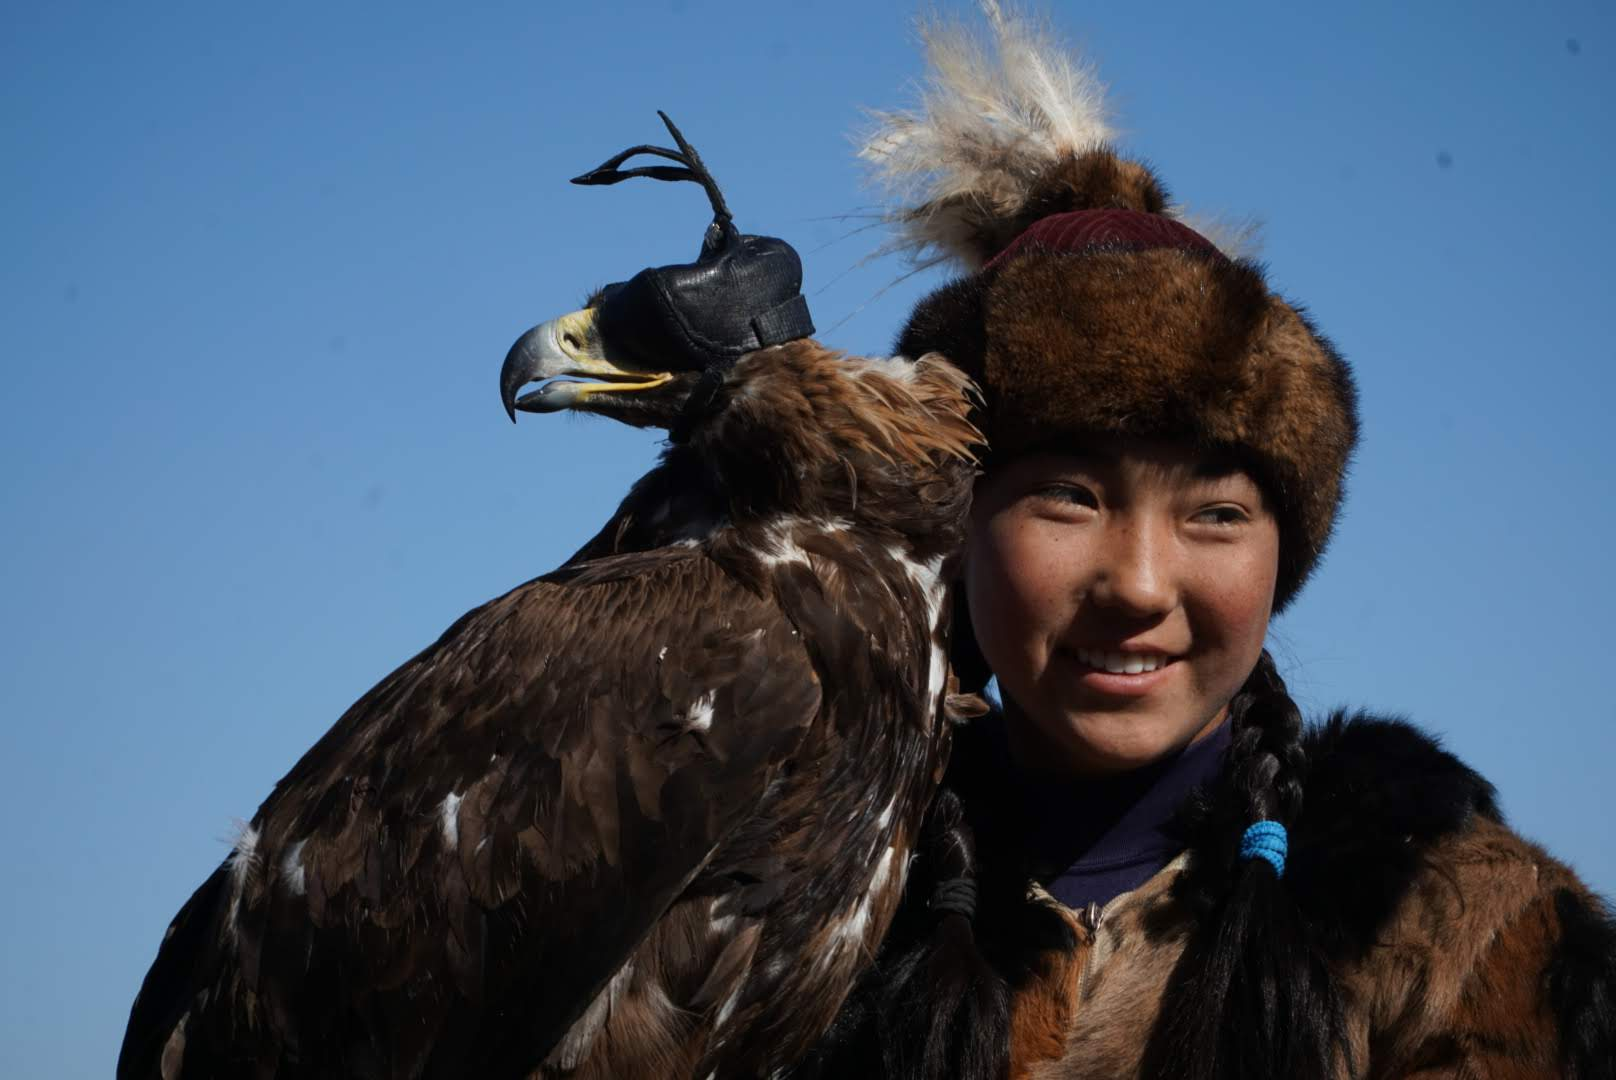 Eagle Huntress, Olgii, Mongolia